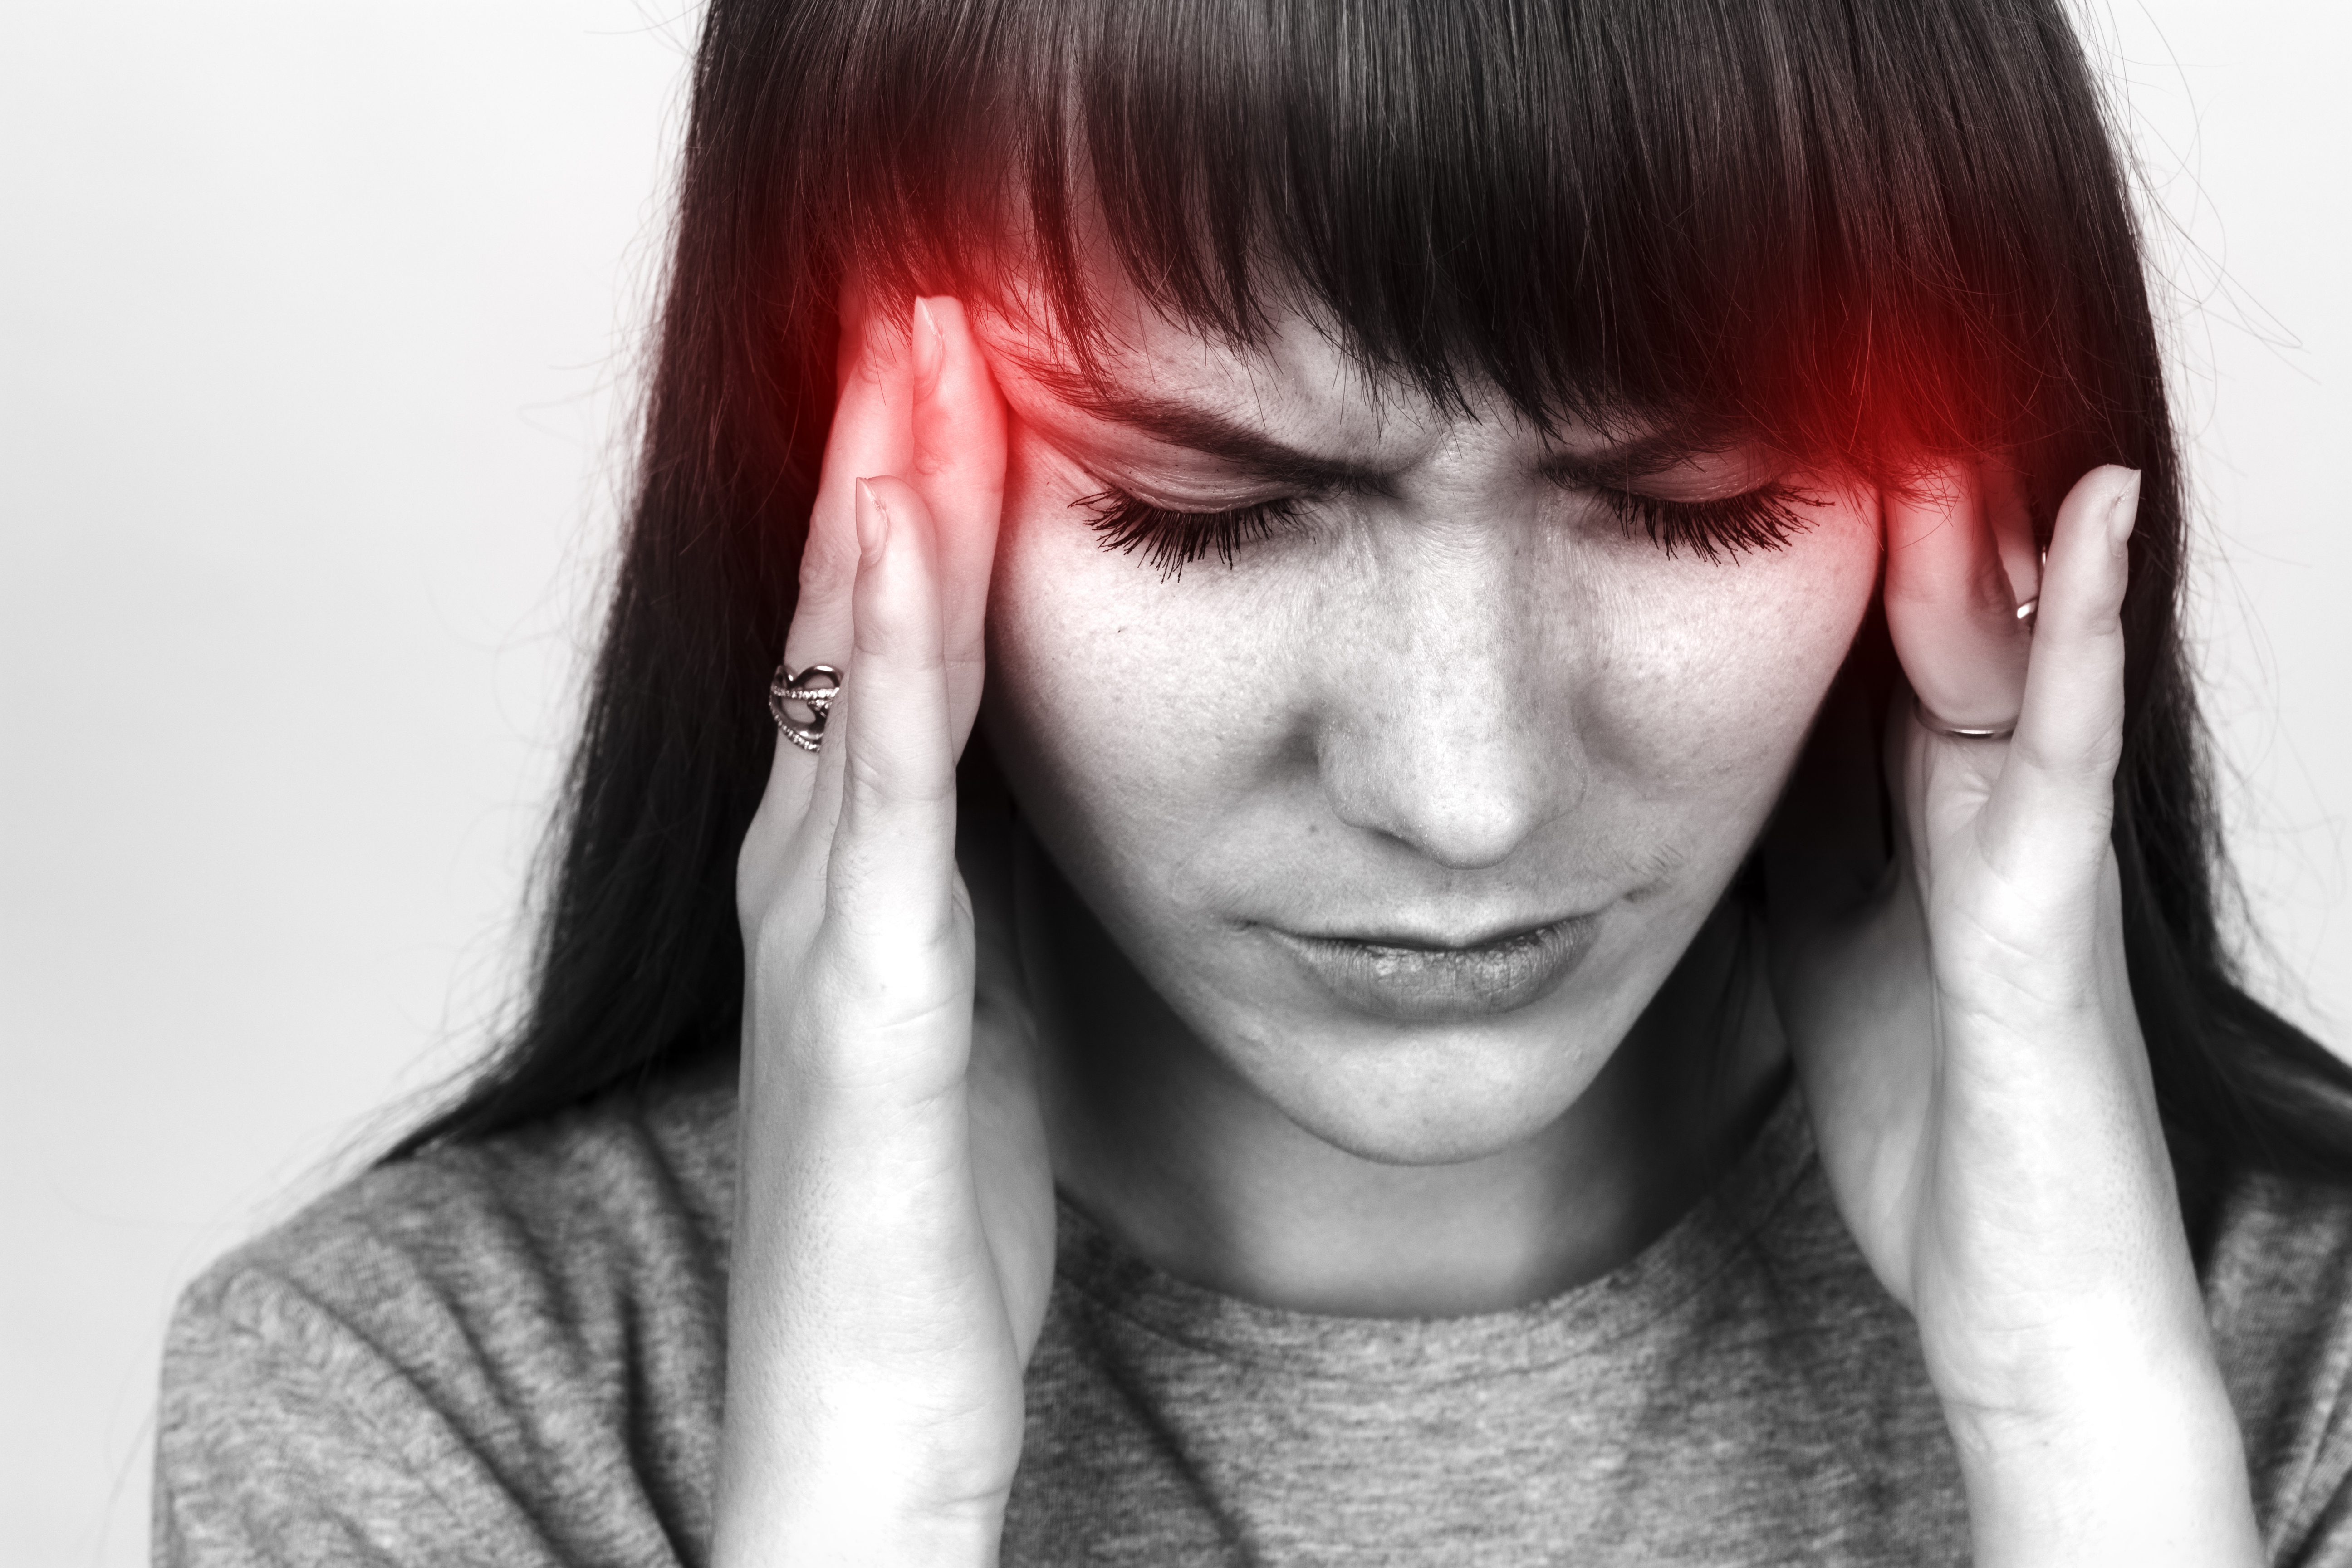 Most Common Cause of Sudden Sharp Pain in Head